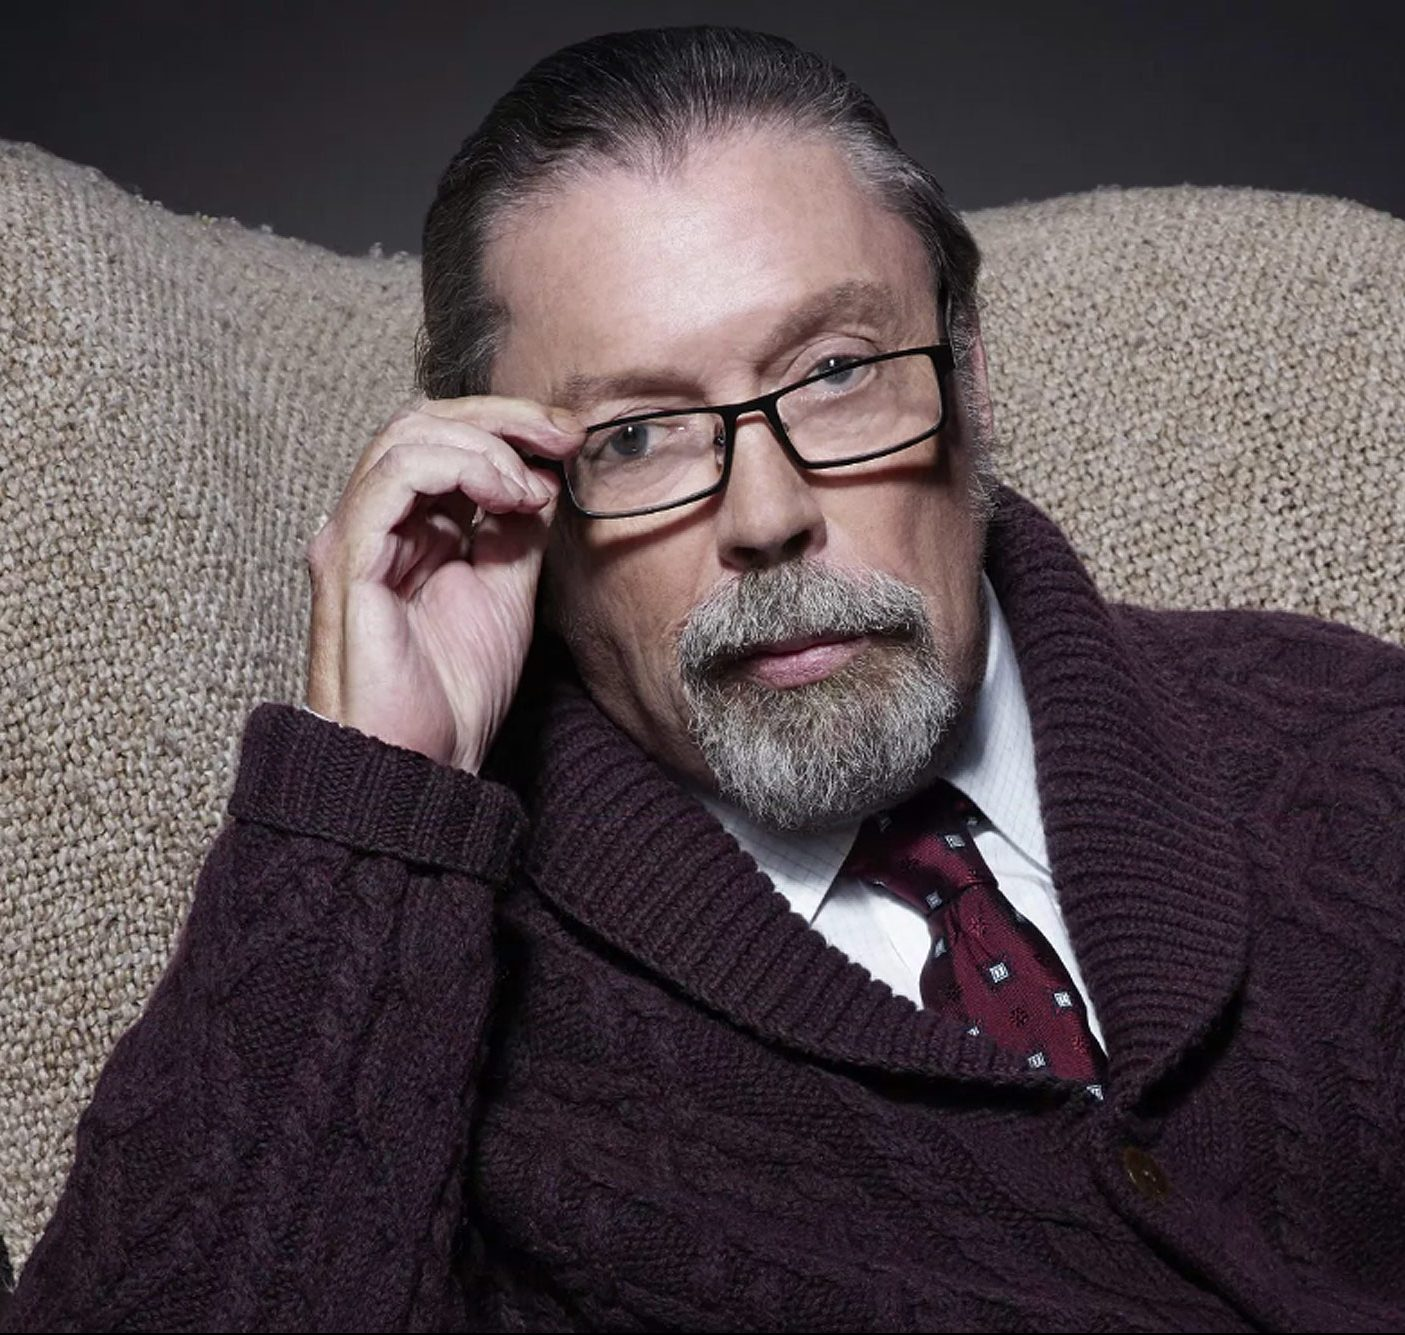 1 25 e1606138208423 40 Facts You Probably Didn't Know About Tim Curry